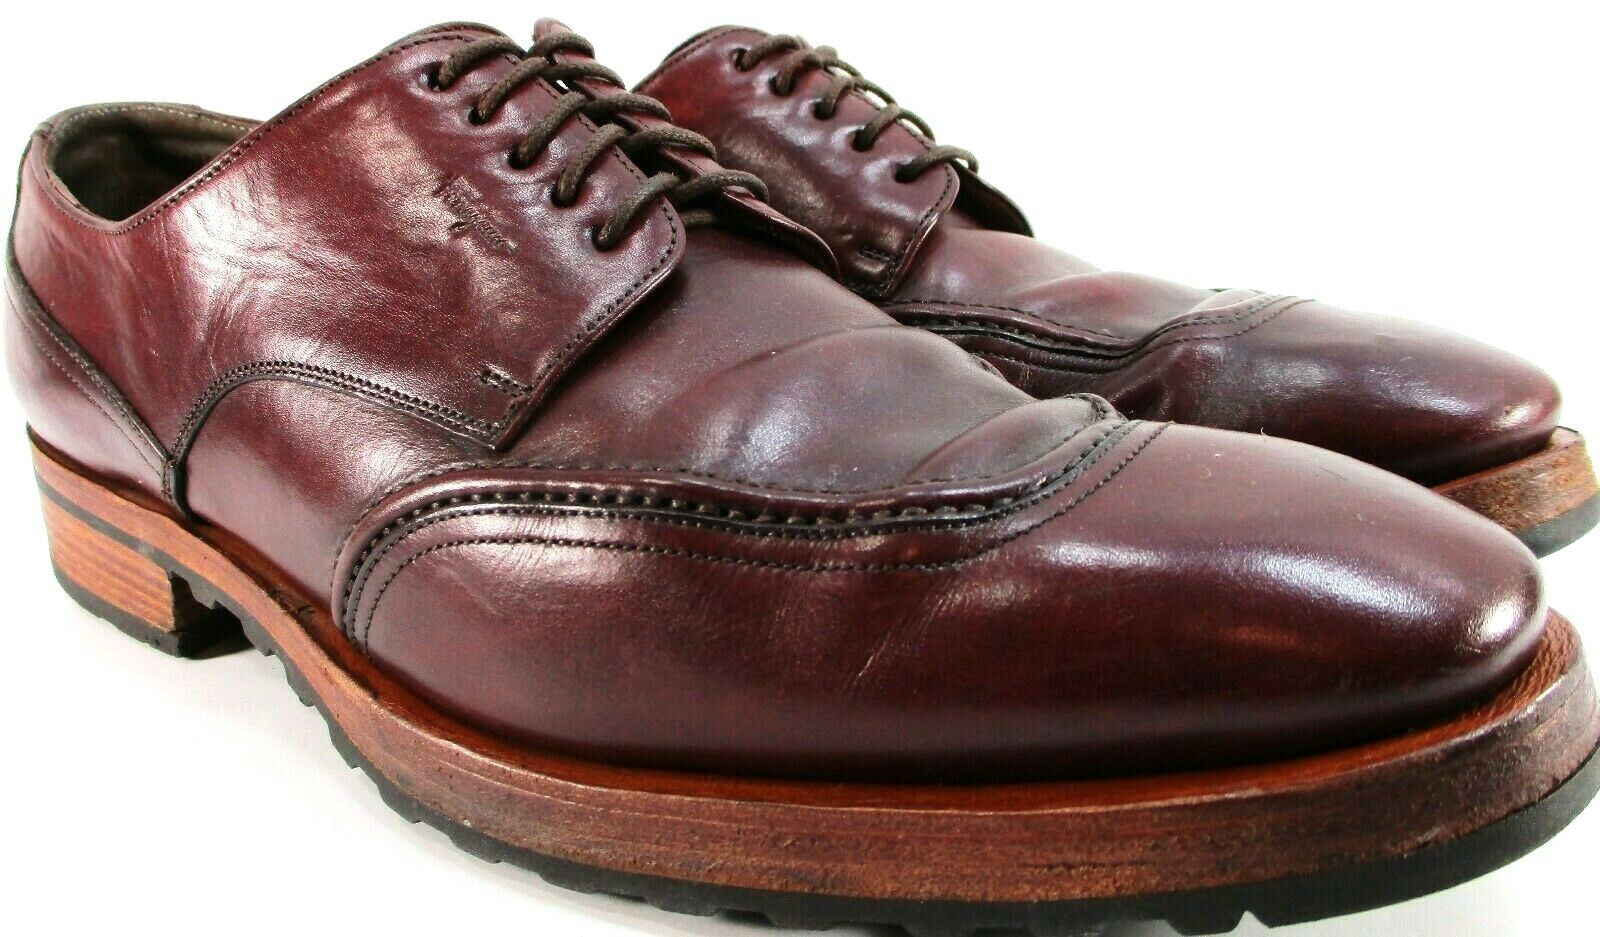 Ferragamo Men Oxford shoes Size 9 D Brown Style 13372 Genuine Leather Made